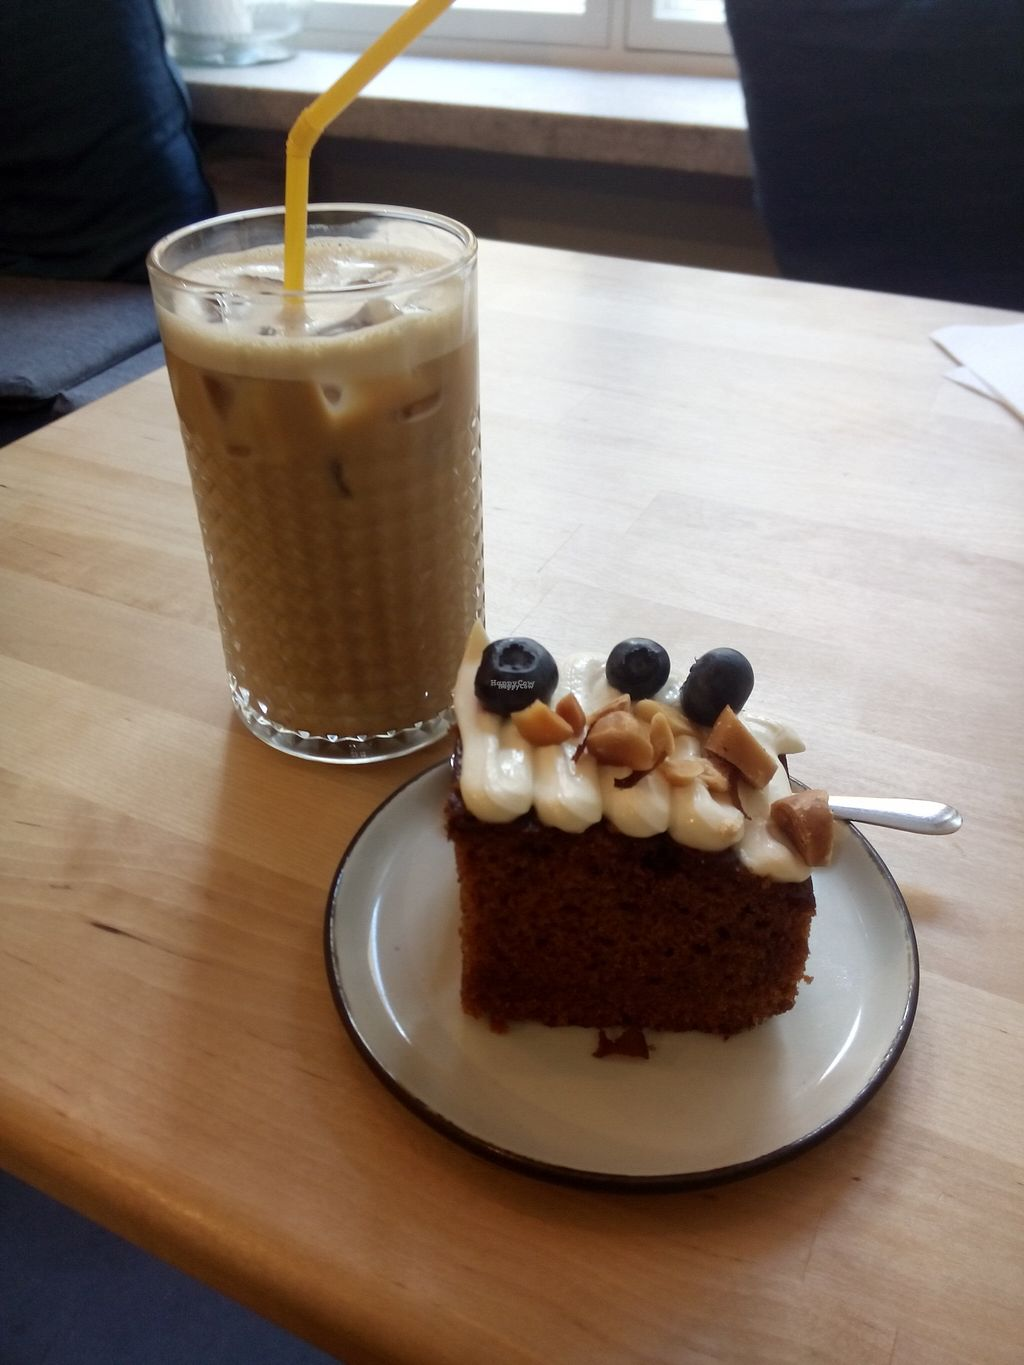 """Photo of El Fant  by <a href=""""/members/profile/Lapa"""">Lapa</a> <br/>Iced oatmilk latte and carrotcake <br/> August 12, 2016  - <a href='/contact/abuse/image/74557/167934'>Report</a>"""